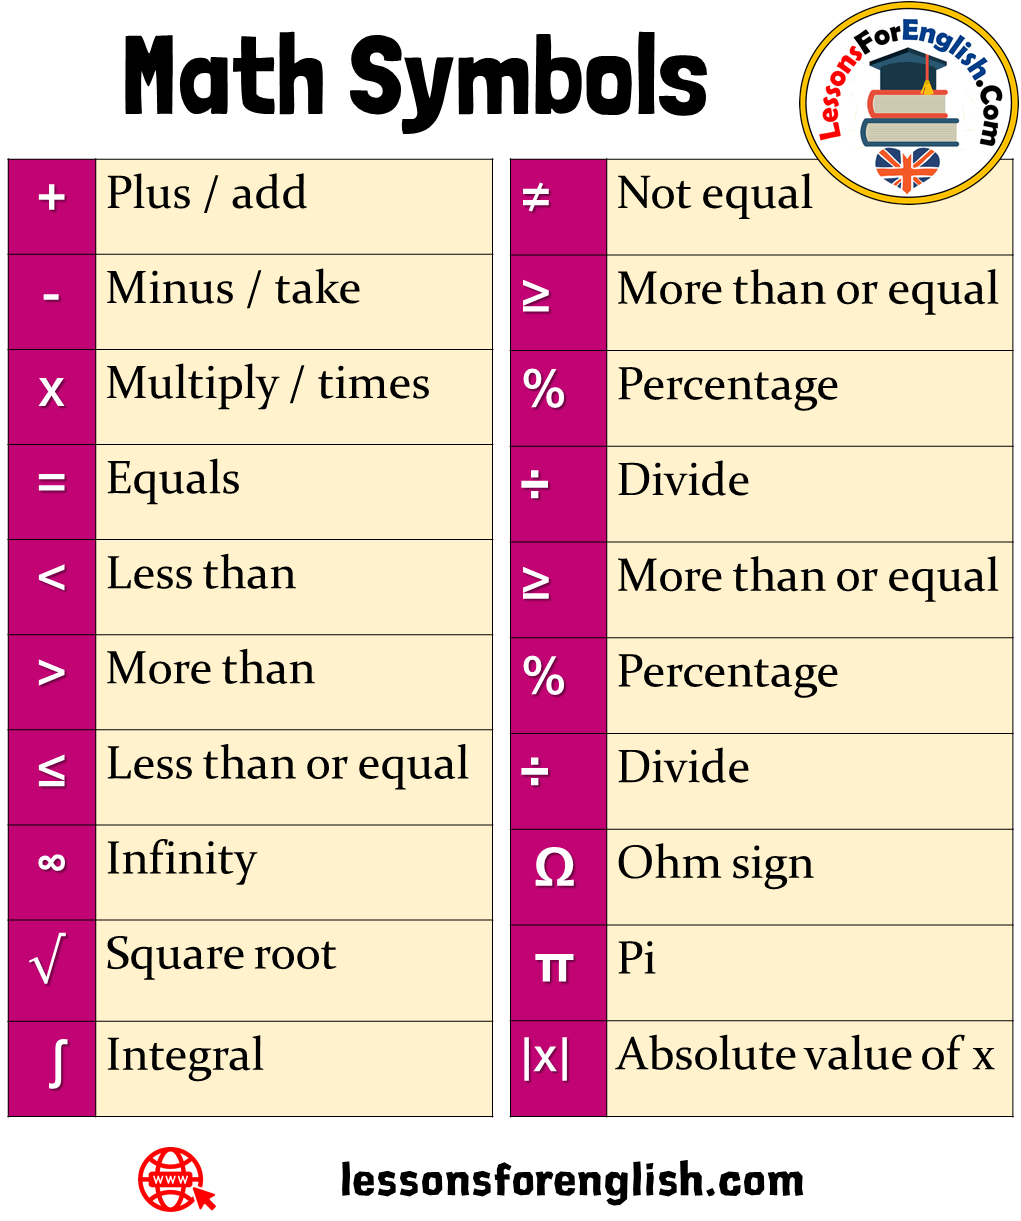 Learn Math Symbols Names Not Equal More Than Or Equal Percentage Divide More Than Or Equal Percentage Divide W Ohm Learning Math Math Signs Math